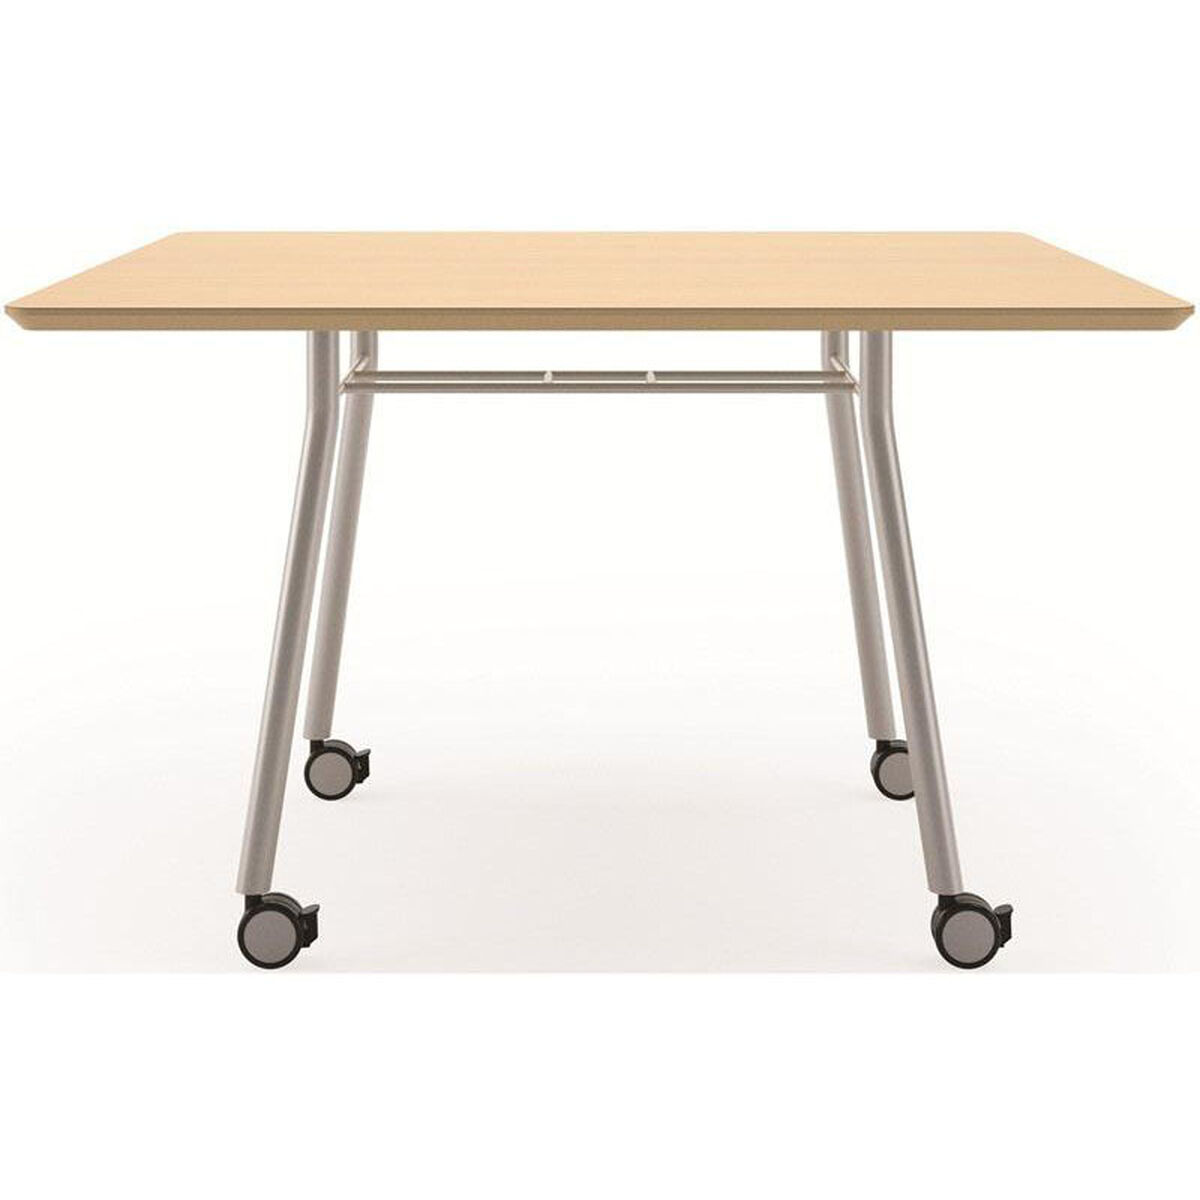 Square Conference Table Mobile MTQ Bizchaircom - Mobile conference table